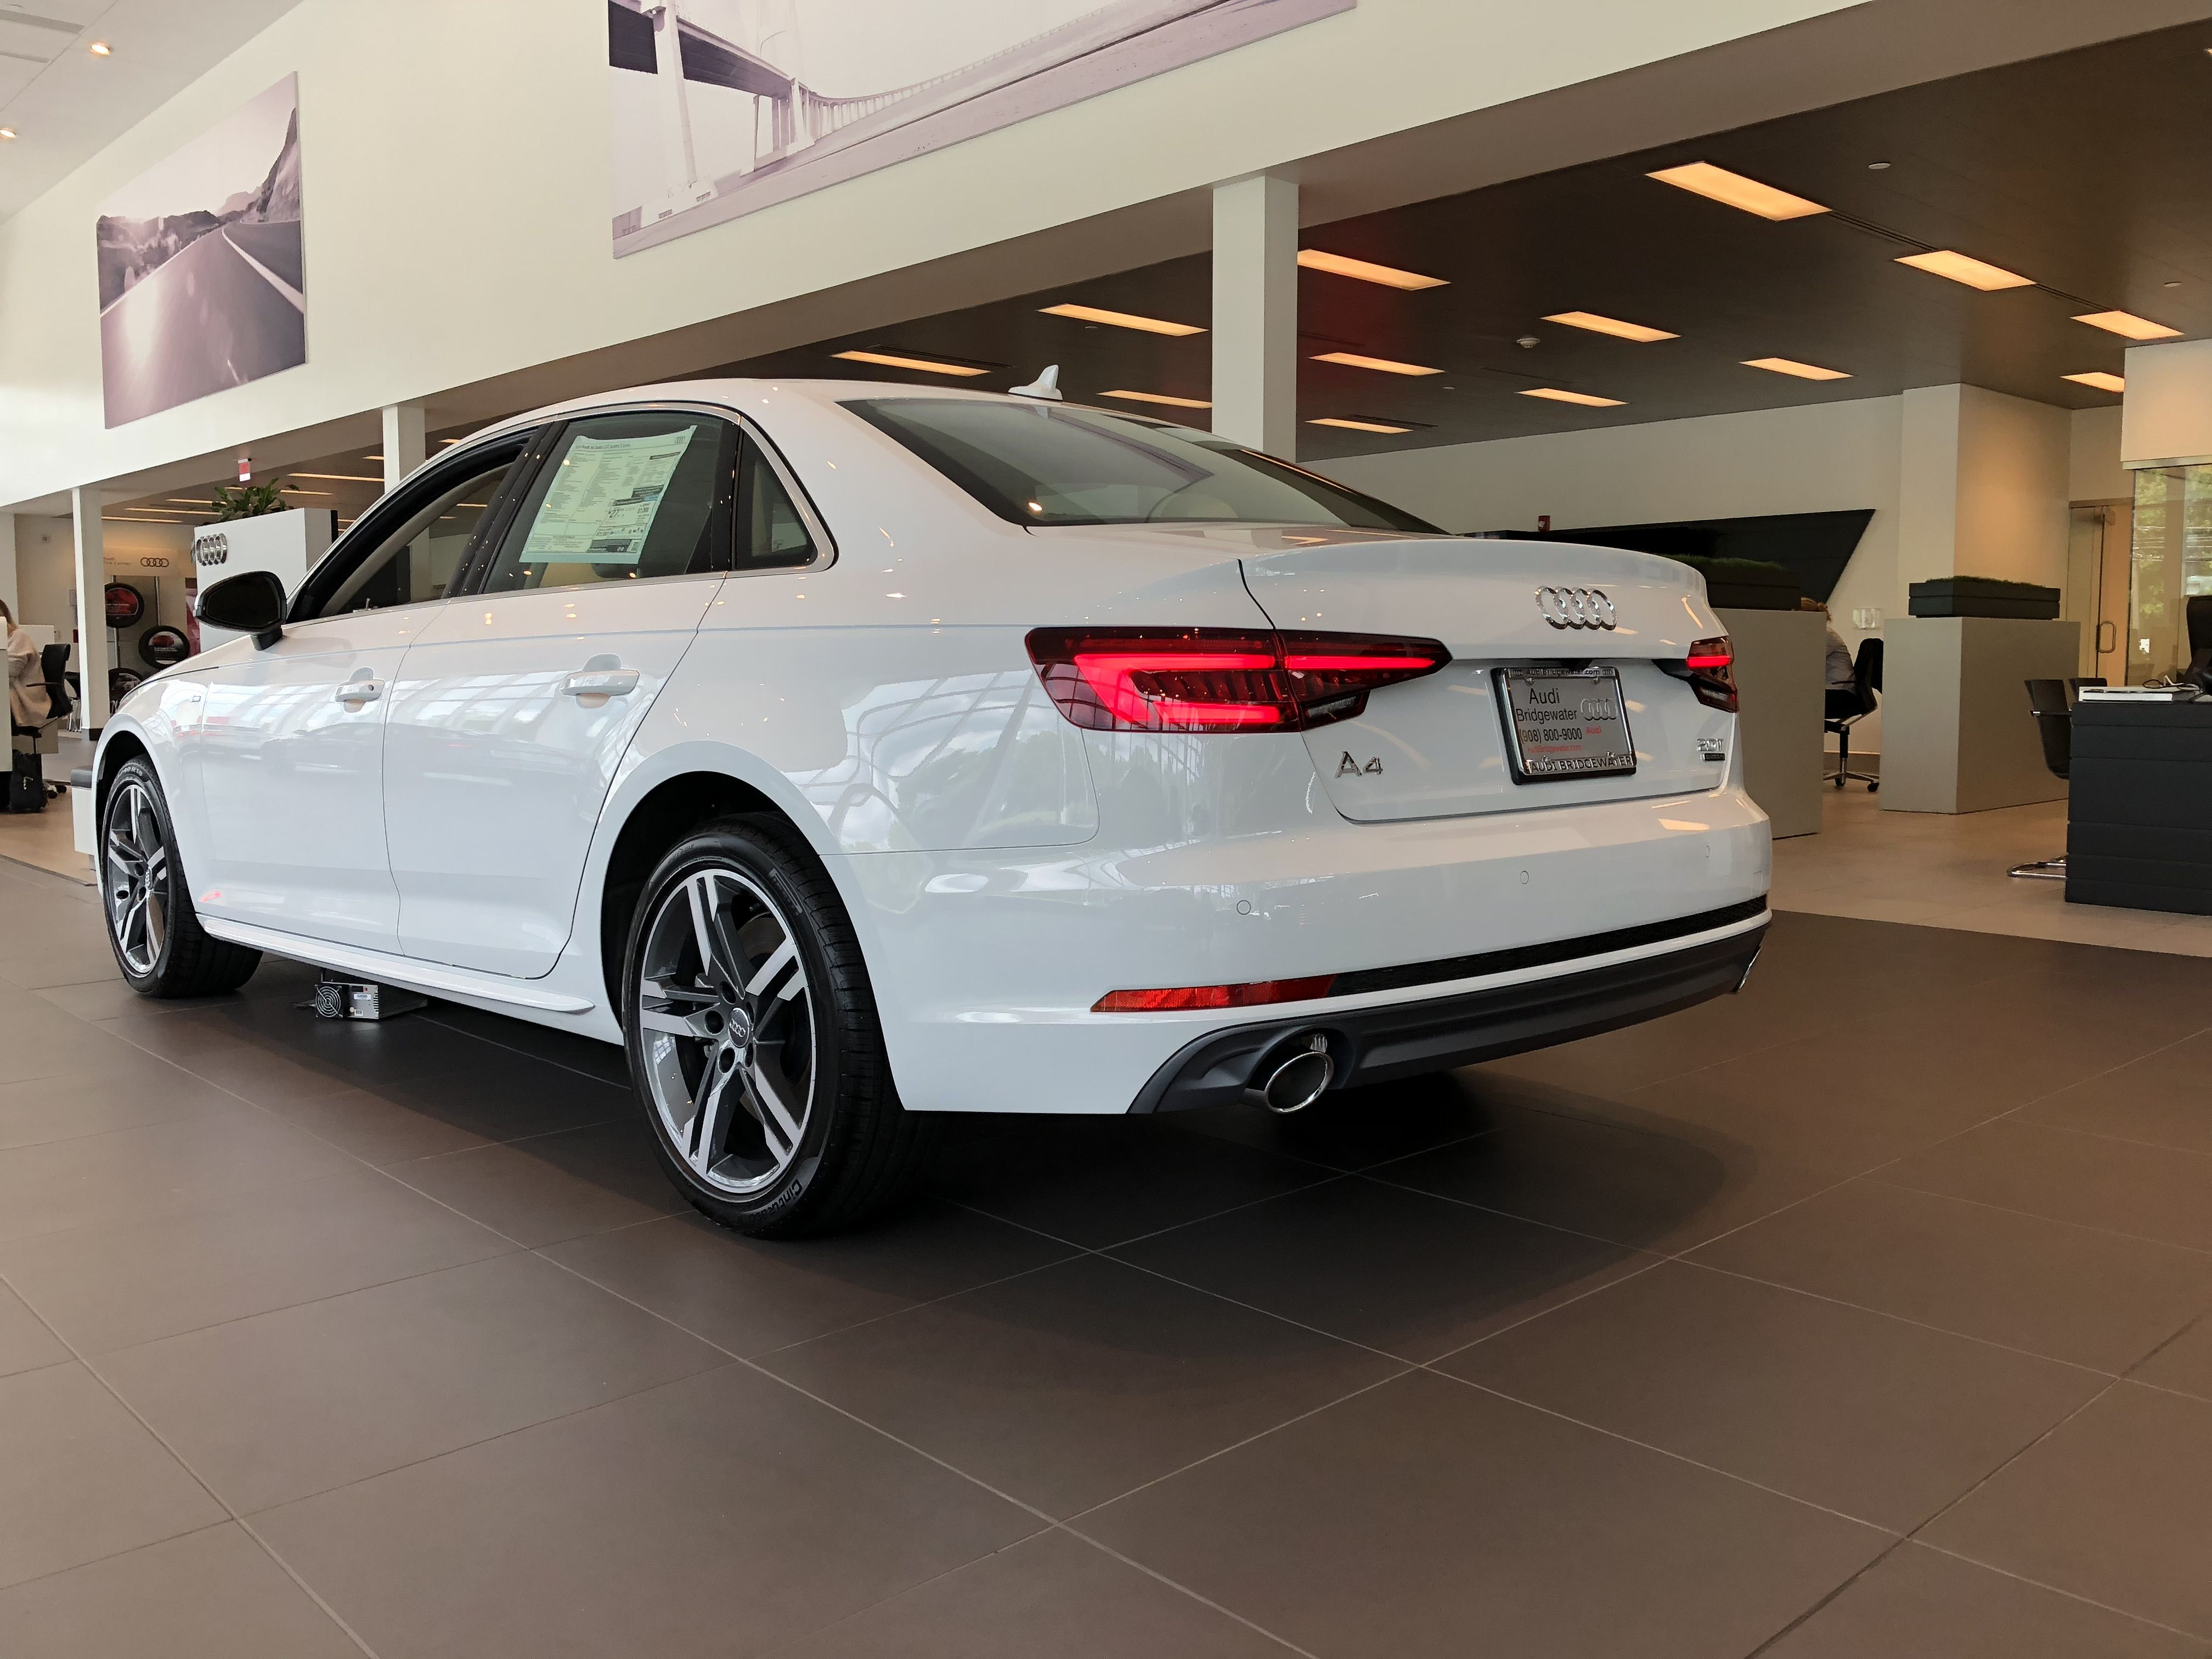 Rear Low Angle View Of The Ibis White 2018 Audi A4 Located At Audi Of Bridgewater Nj Small Luxury Cars Audi Audi Dealership